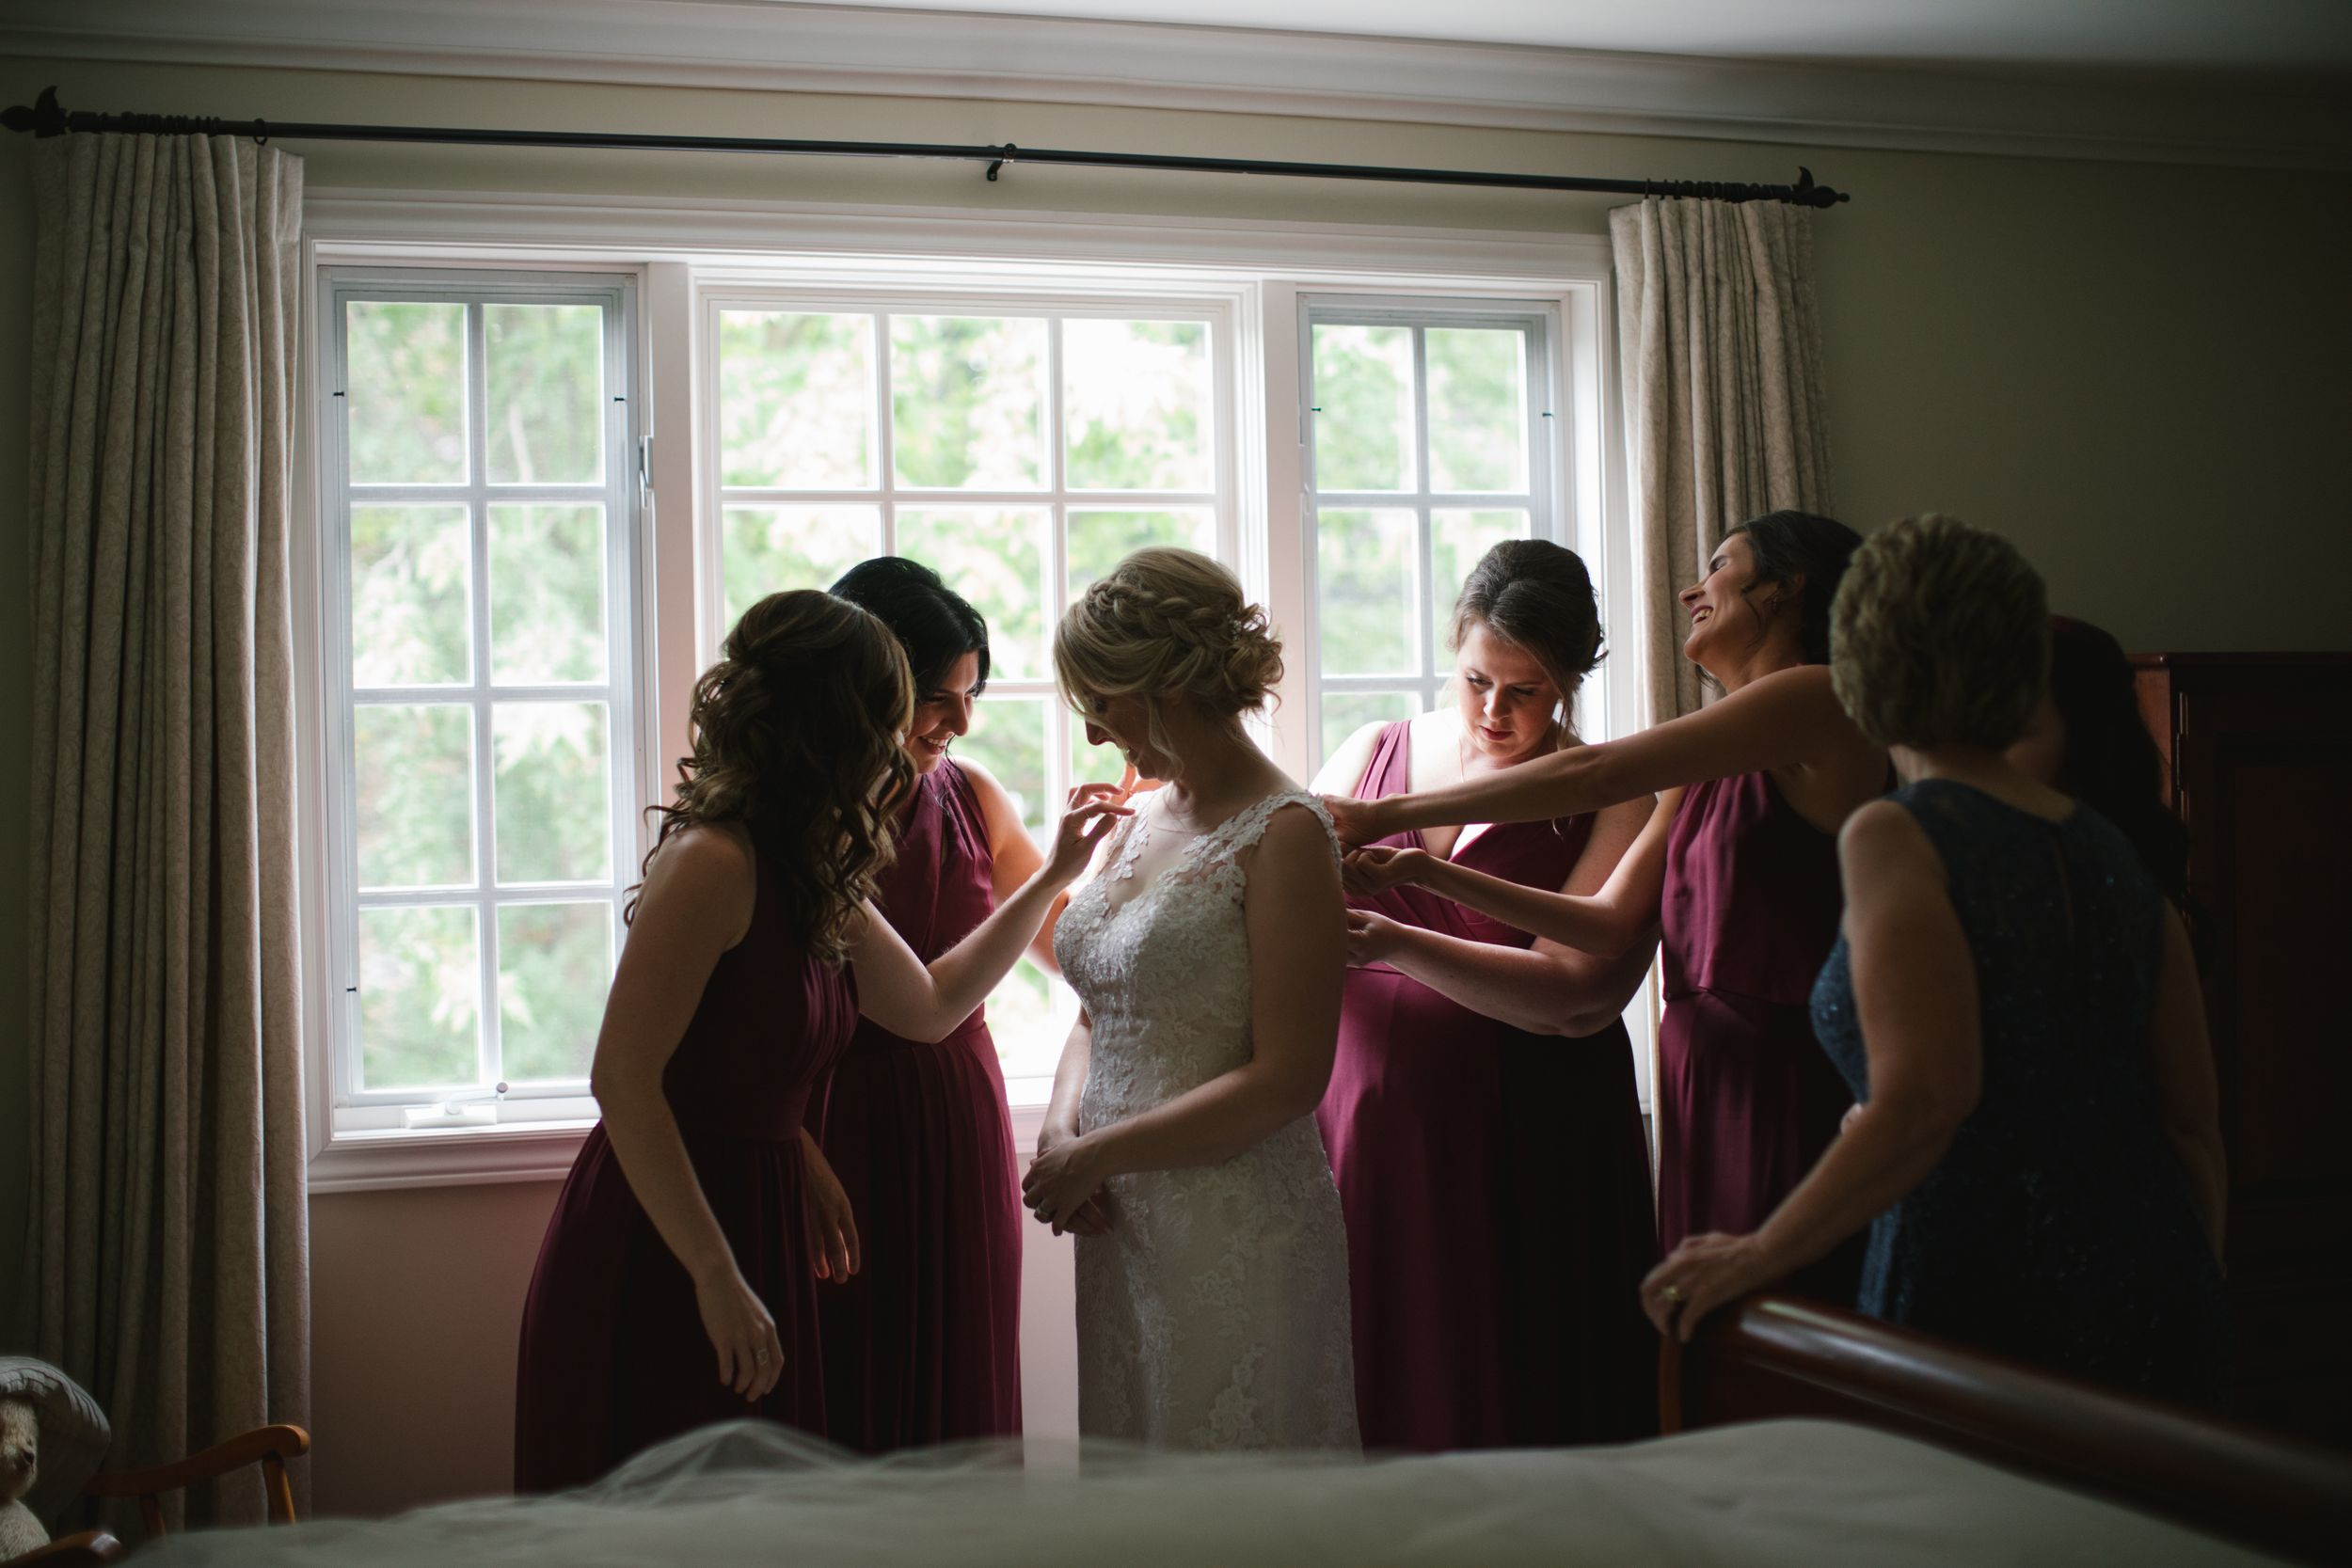 bridesmaids in burgundy dresses helping bride into her wedding dress against the window